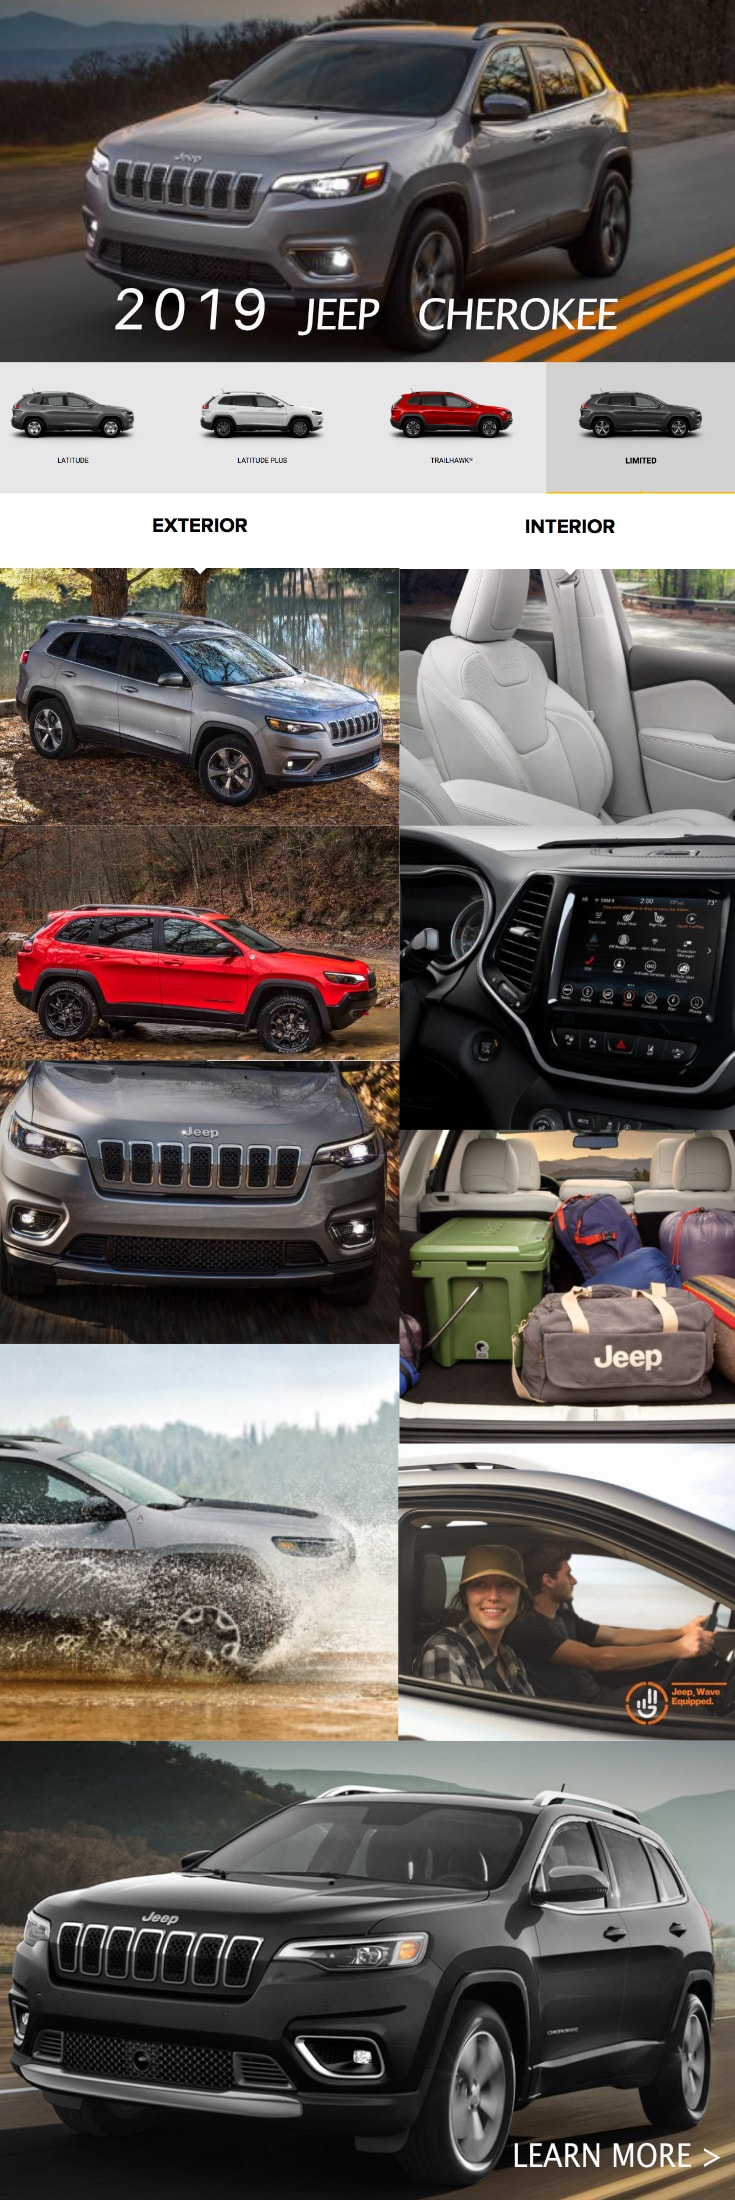 Whether Youu0027re Tackling Our Beautiful Hills Or Making Your Way Down The  Highway, The 2019 Jeep Cherokee Has The Powertrain, Space, And Convenience  Features ...